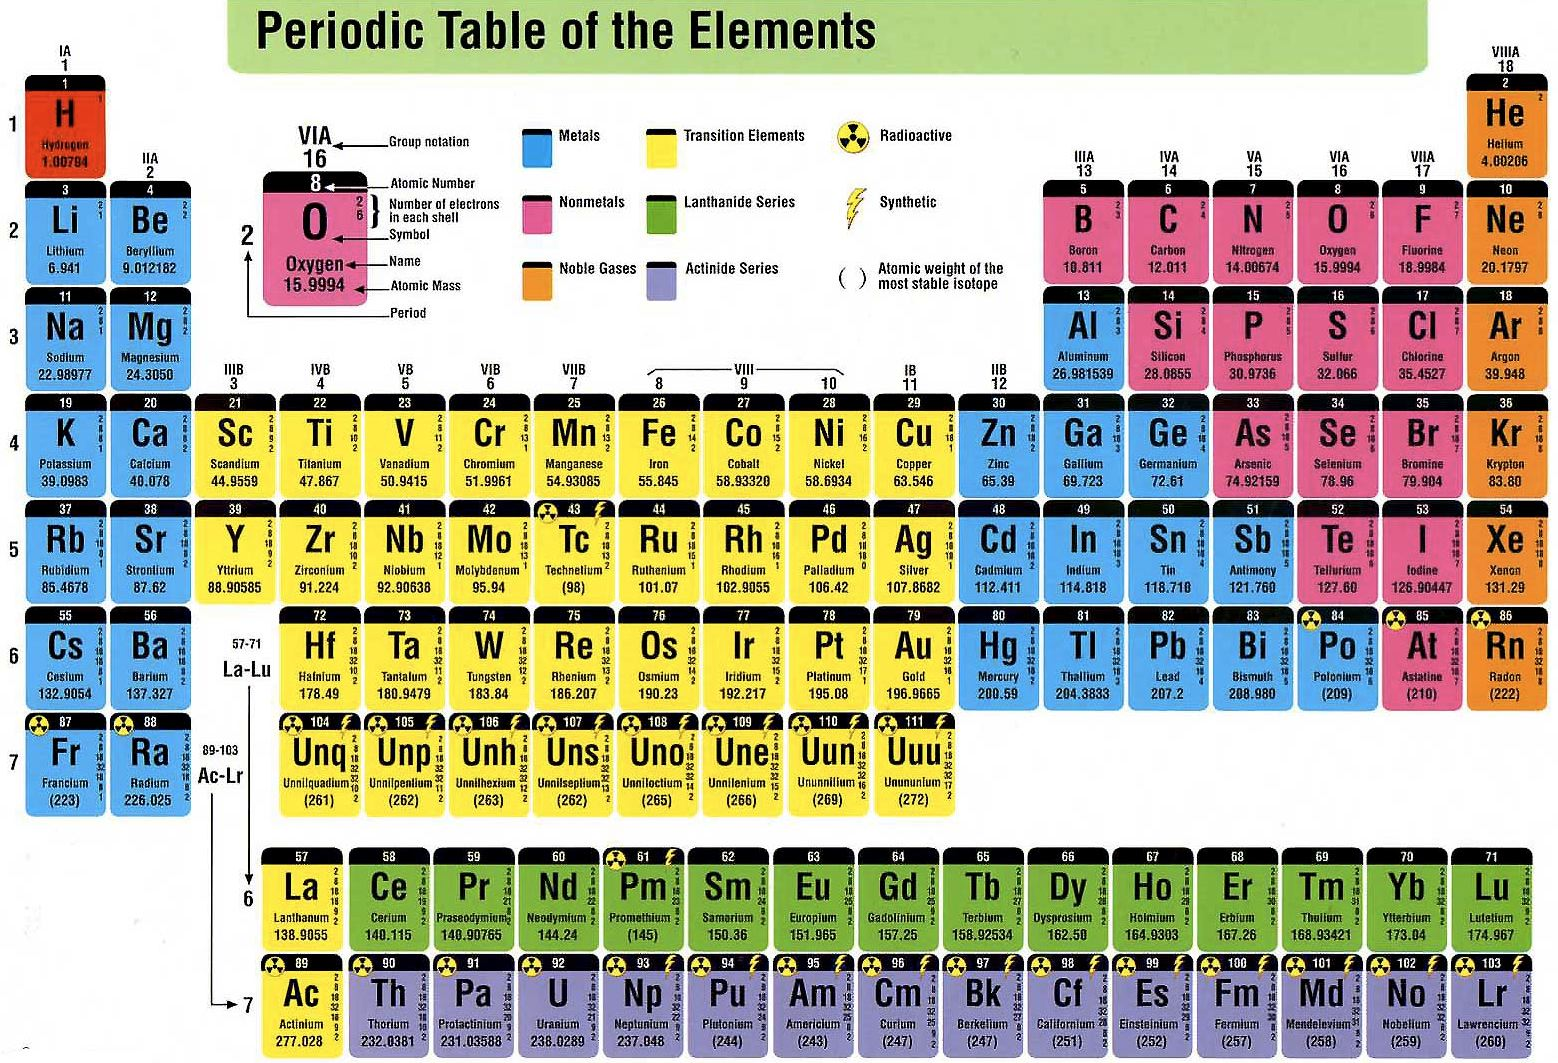 Grasp the Periodic Table of Elements with funny mnemonics in